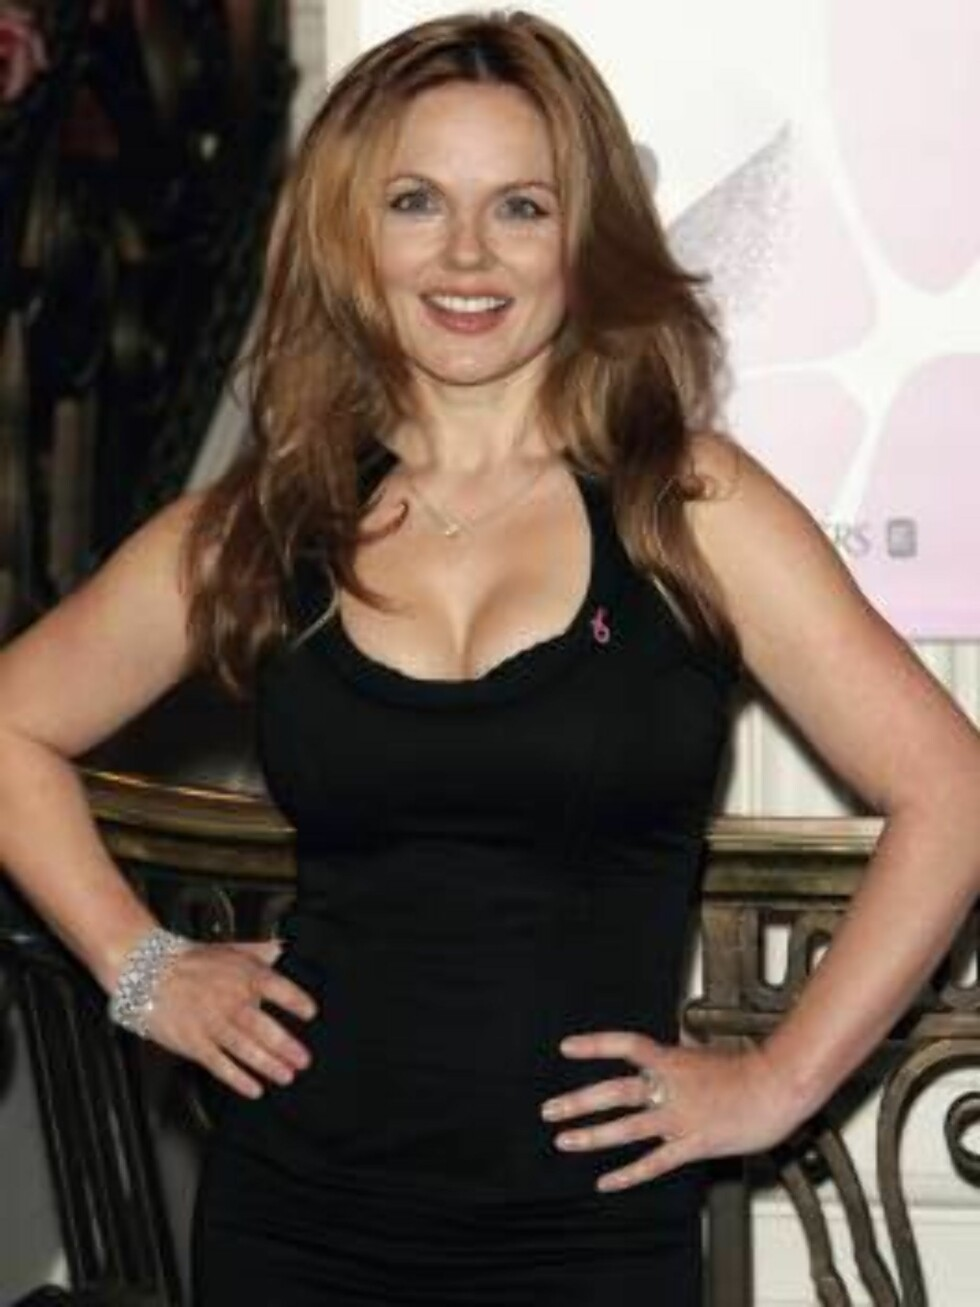 LONDON - OCTOBER 4:  Geri Halliwell arrives at the Breast Cancer Care 2006 Fashion Show at Grosvenor House, Park Lane October 4, 2006 in London, England. The annual fashion show aims to raise awareness of breast cancer as part of Breast Cancer Awareness M Foto: All Over Press